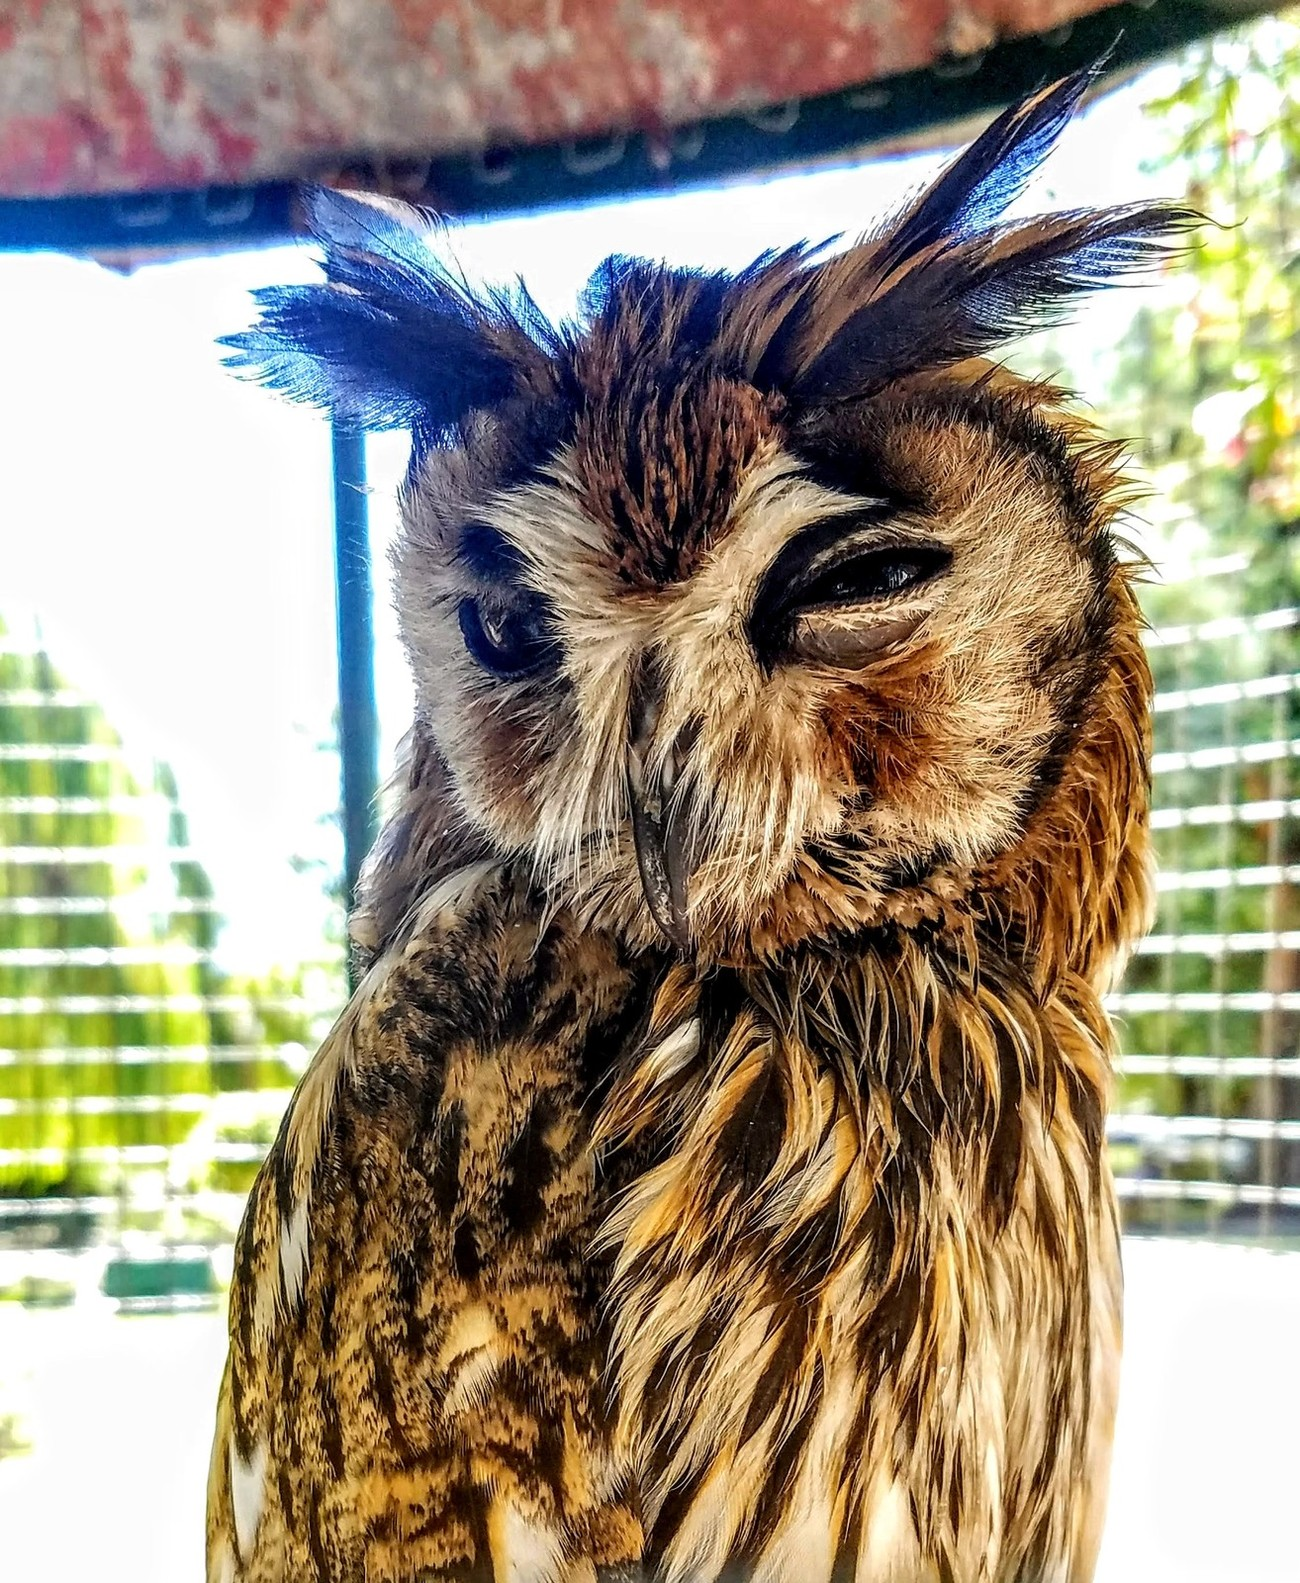 Buenois Aires Ranch Owl